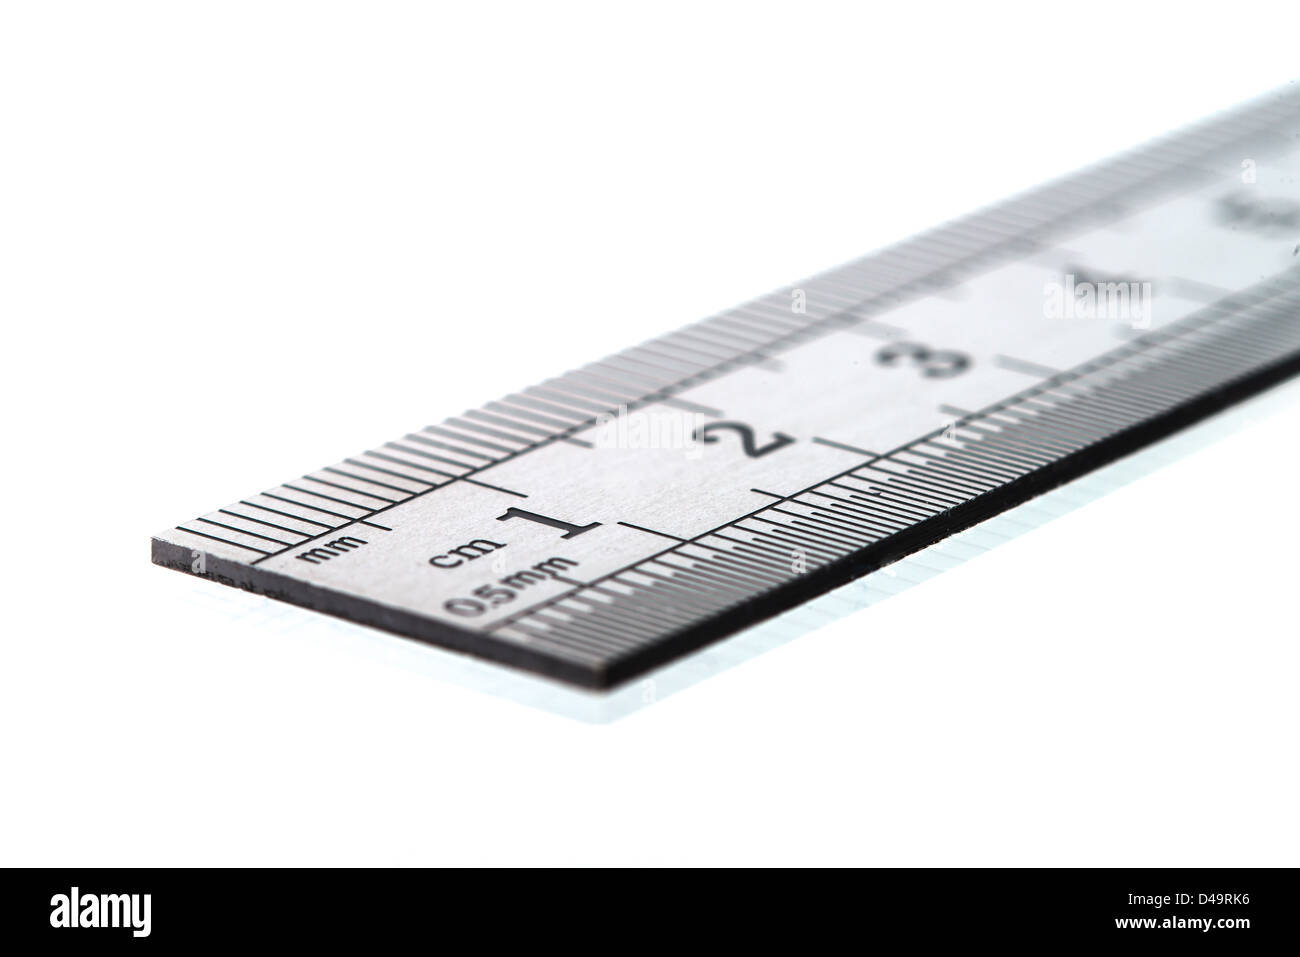 This is an image of a ruler. - Stock Image